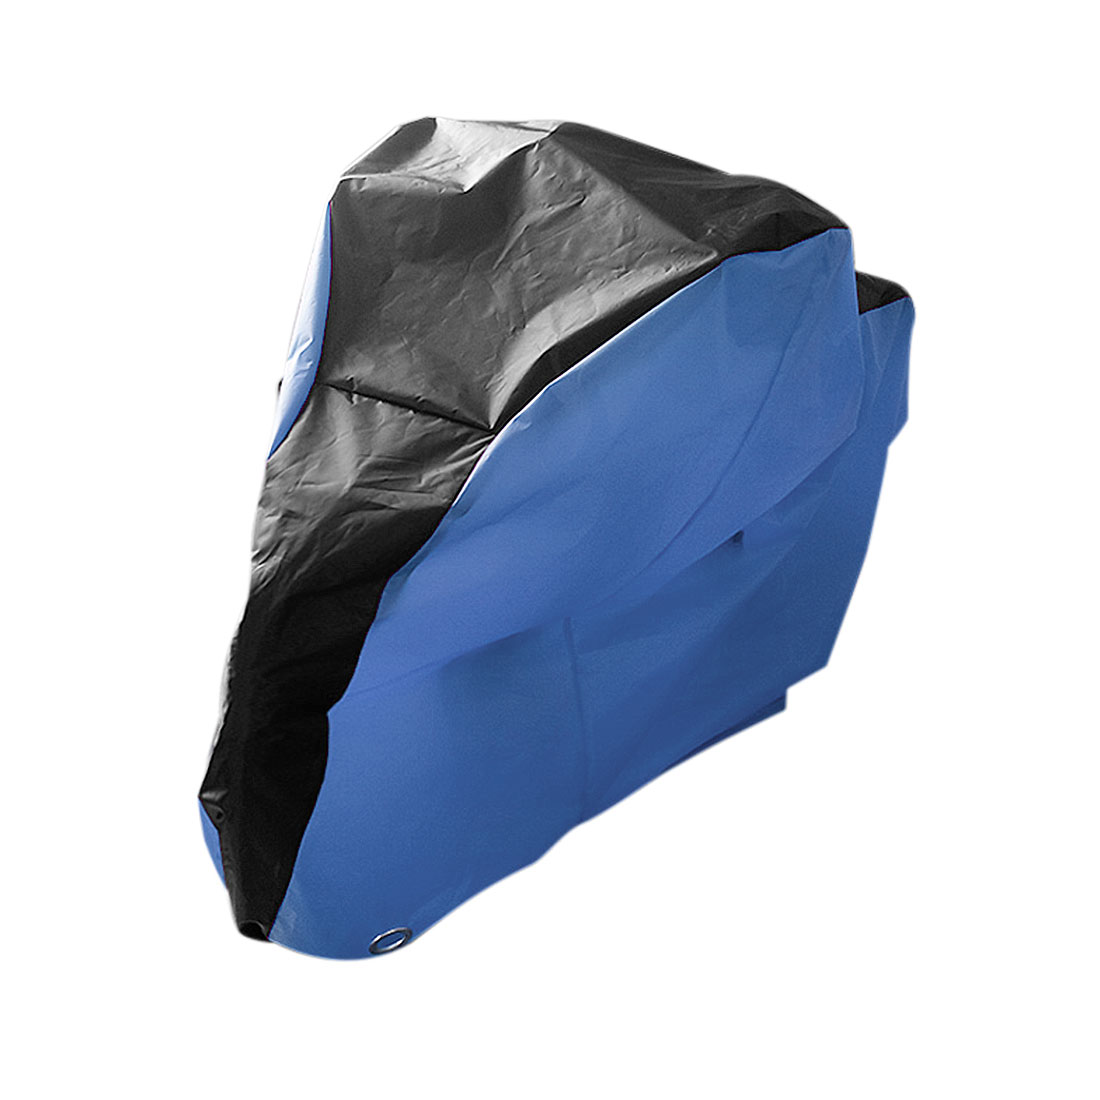 M Deep Blue Waterproof Rain UV Dust Resistant Protective Cover for Bike Bicycle